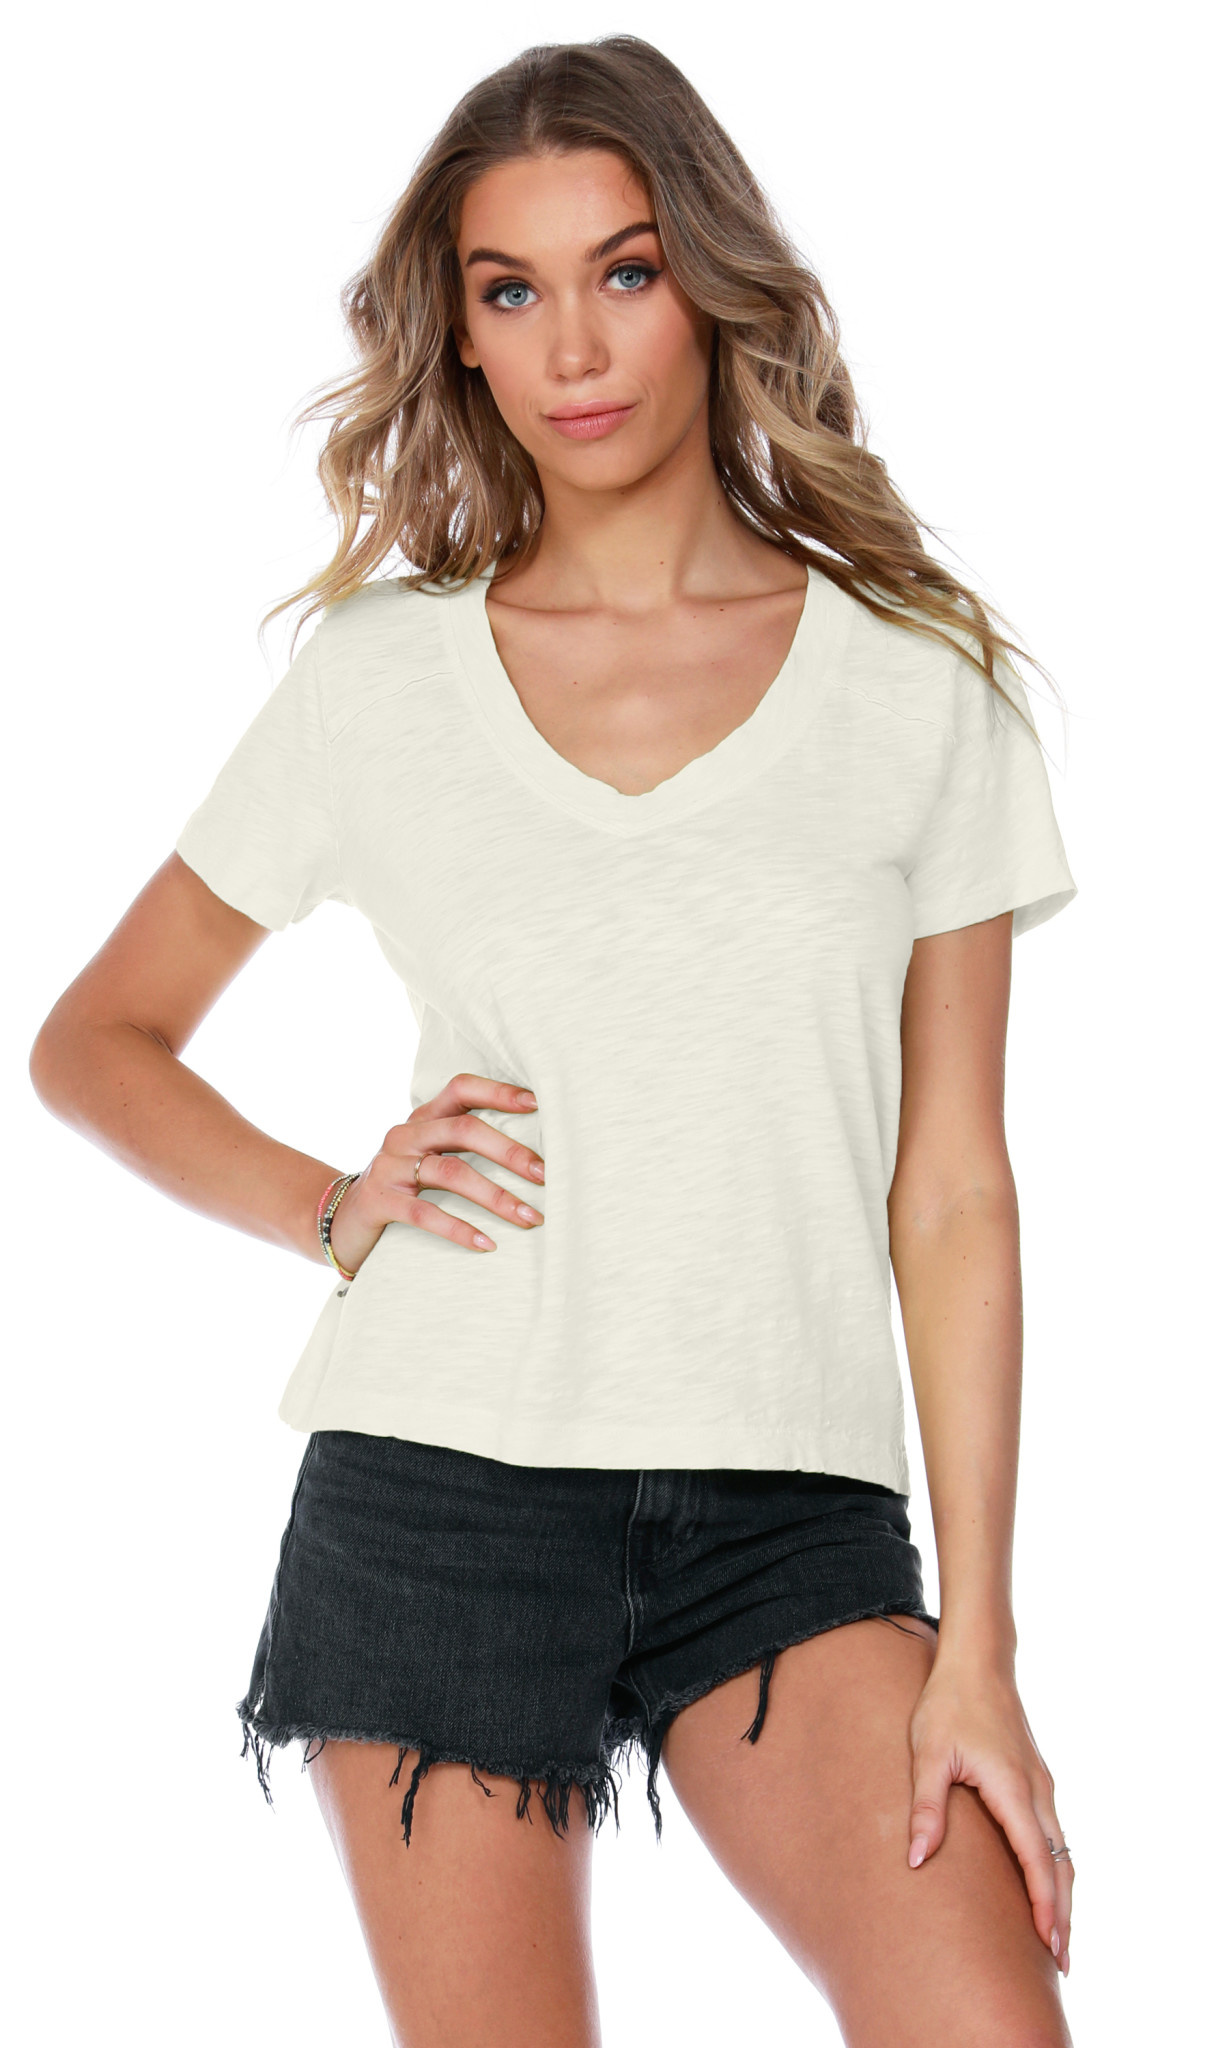 V Neck Boxy Tee Shirt